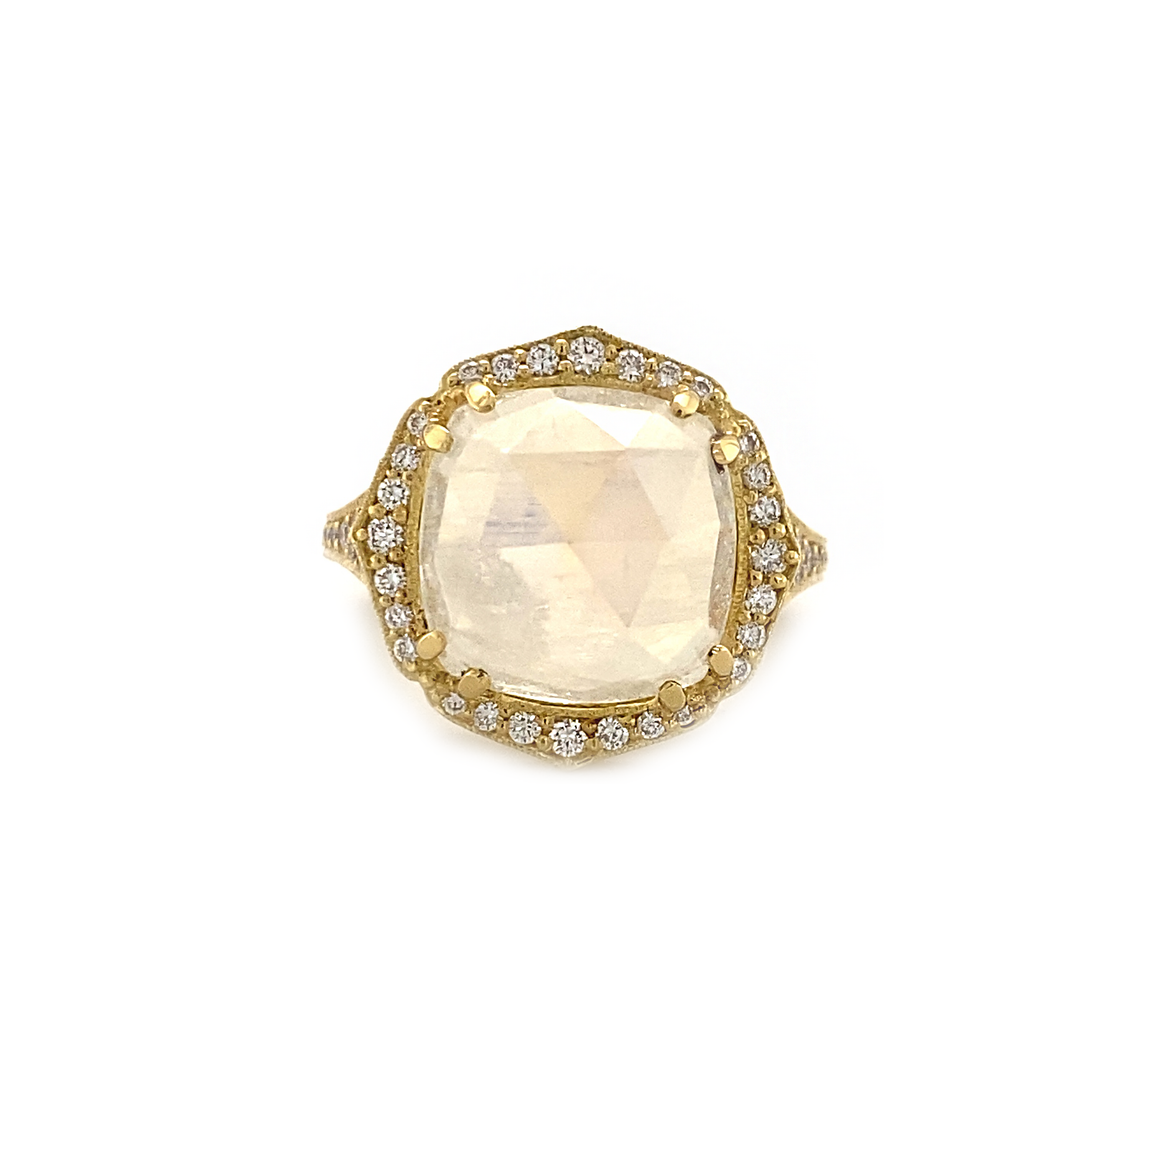 Diamond and Cushion Cut Moonstone Ring - Lesley Ann Jewels